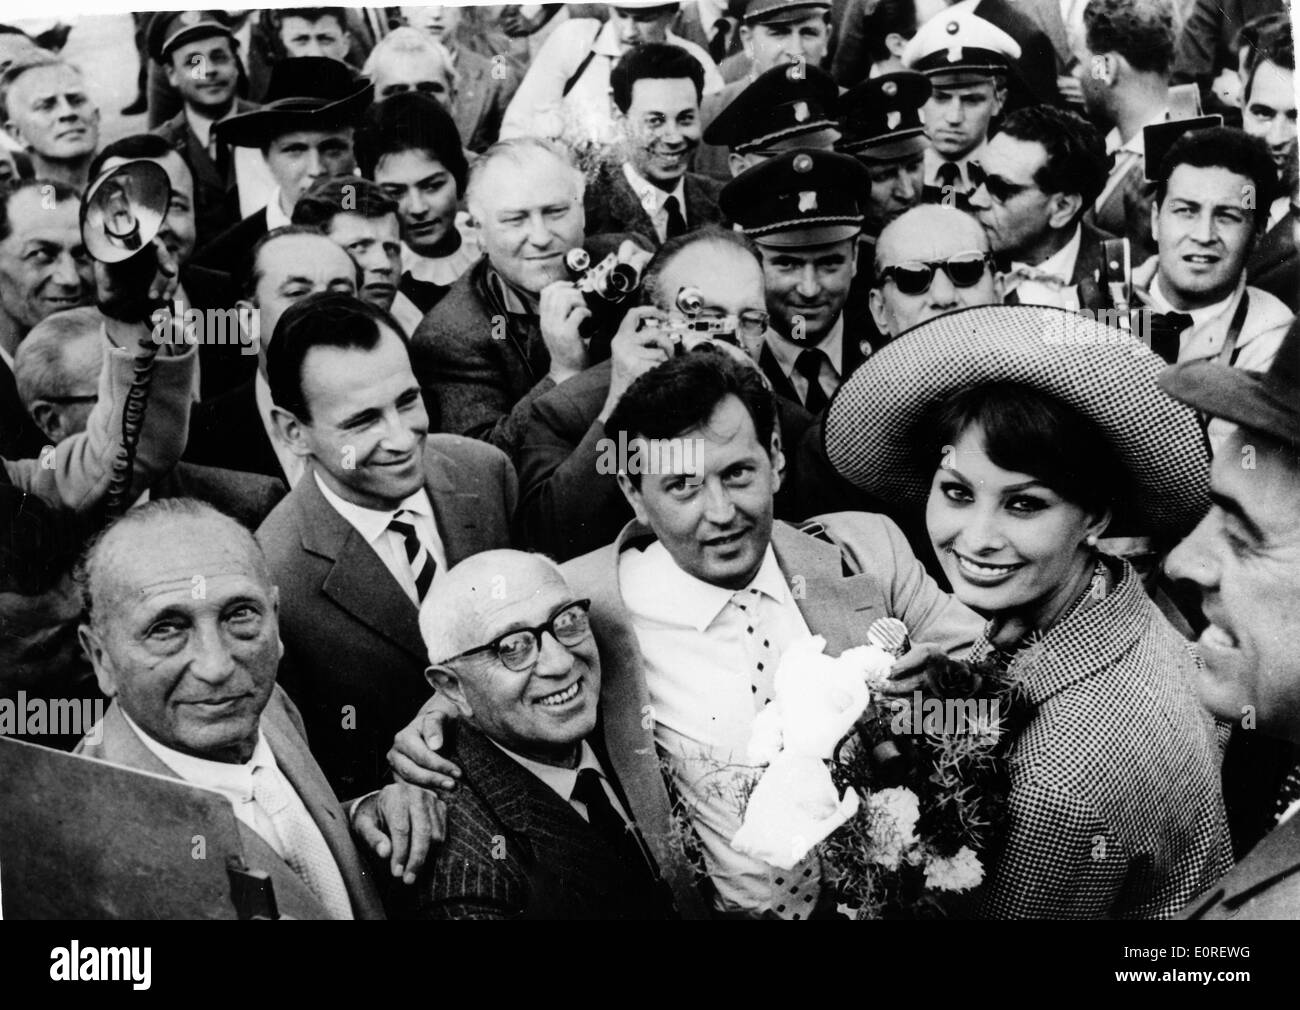 Actress Sophia Loren being greeted by fans in Austria - Stock Image